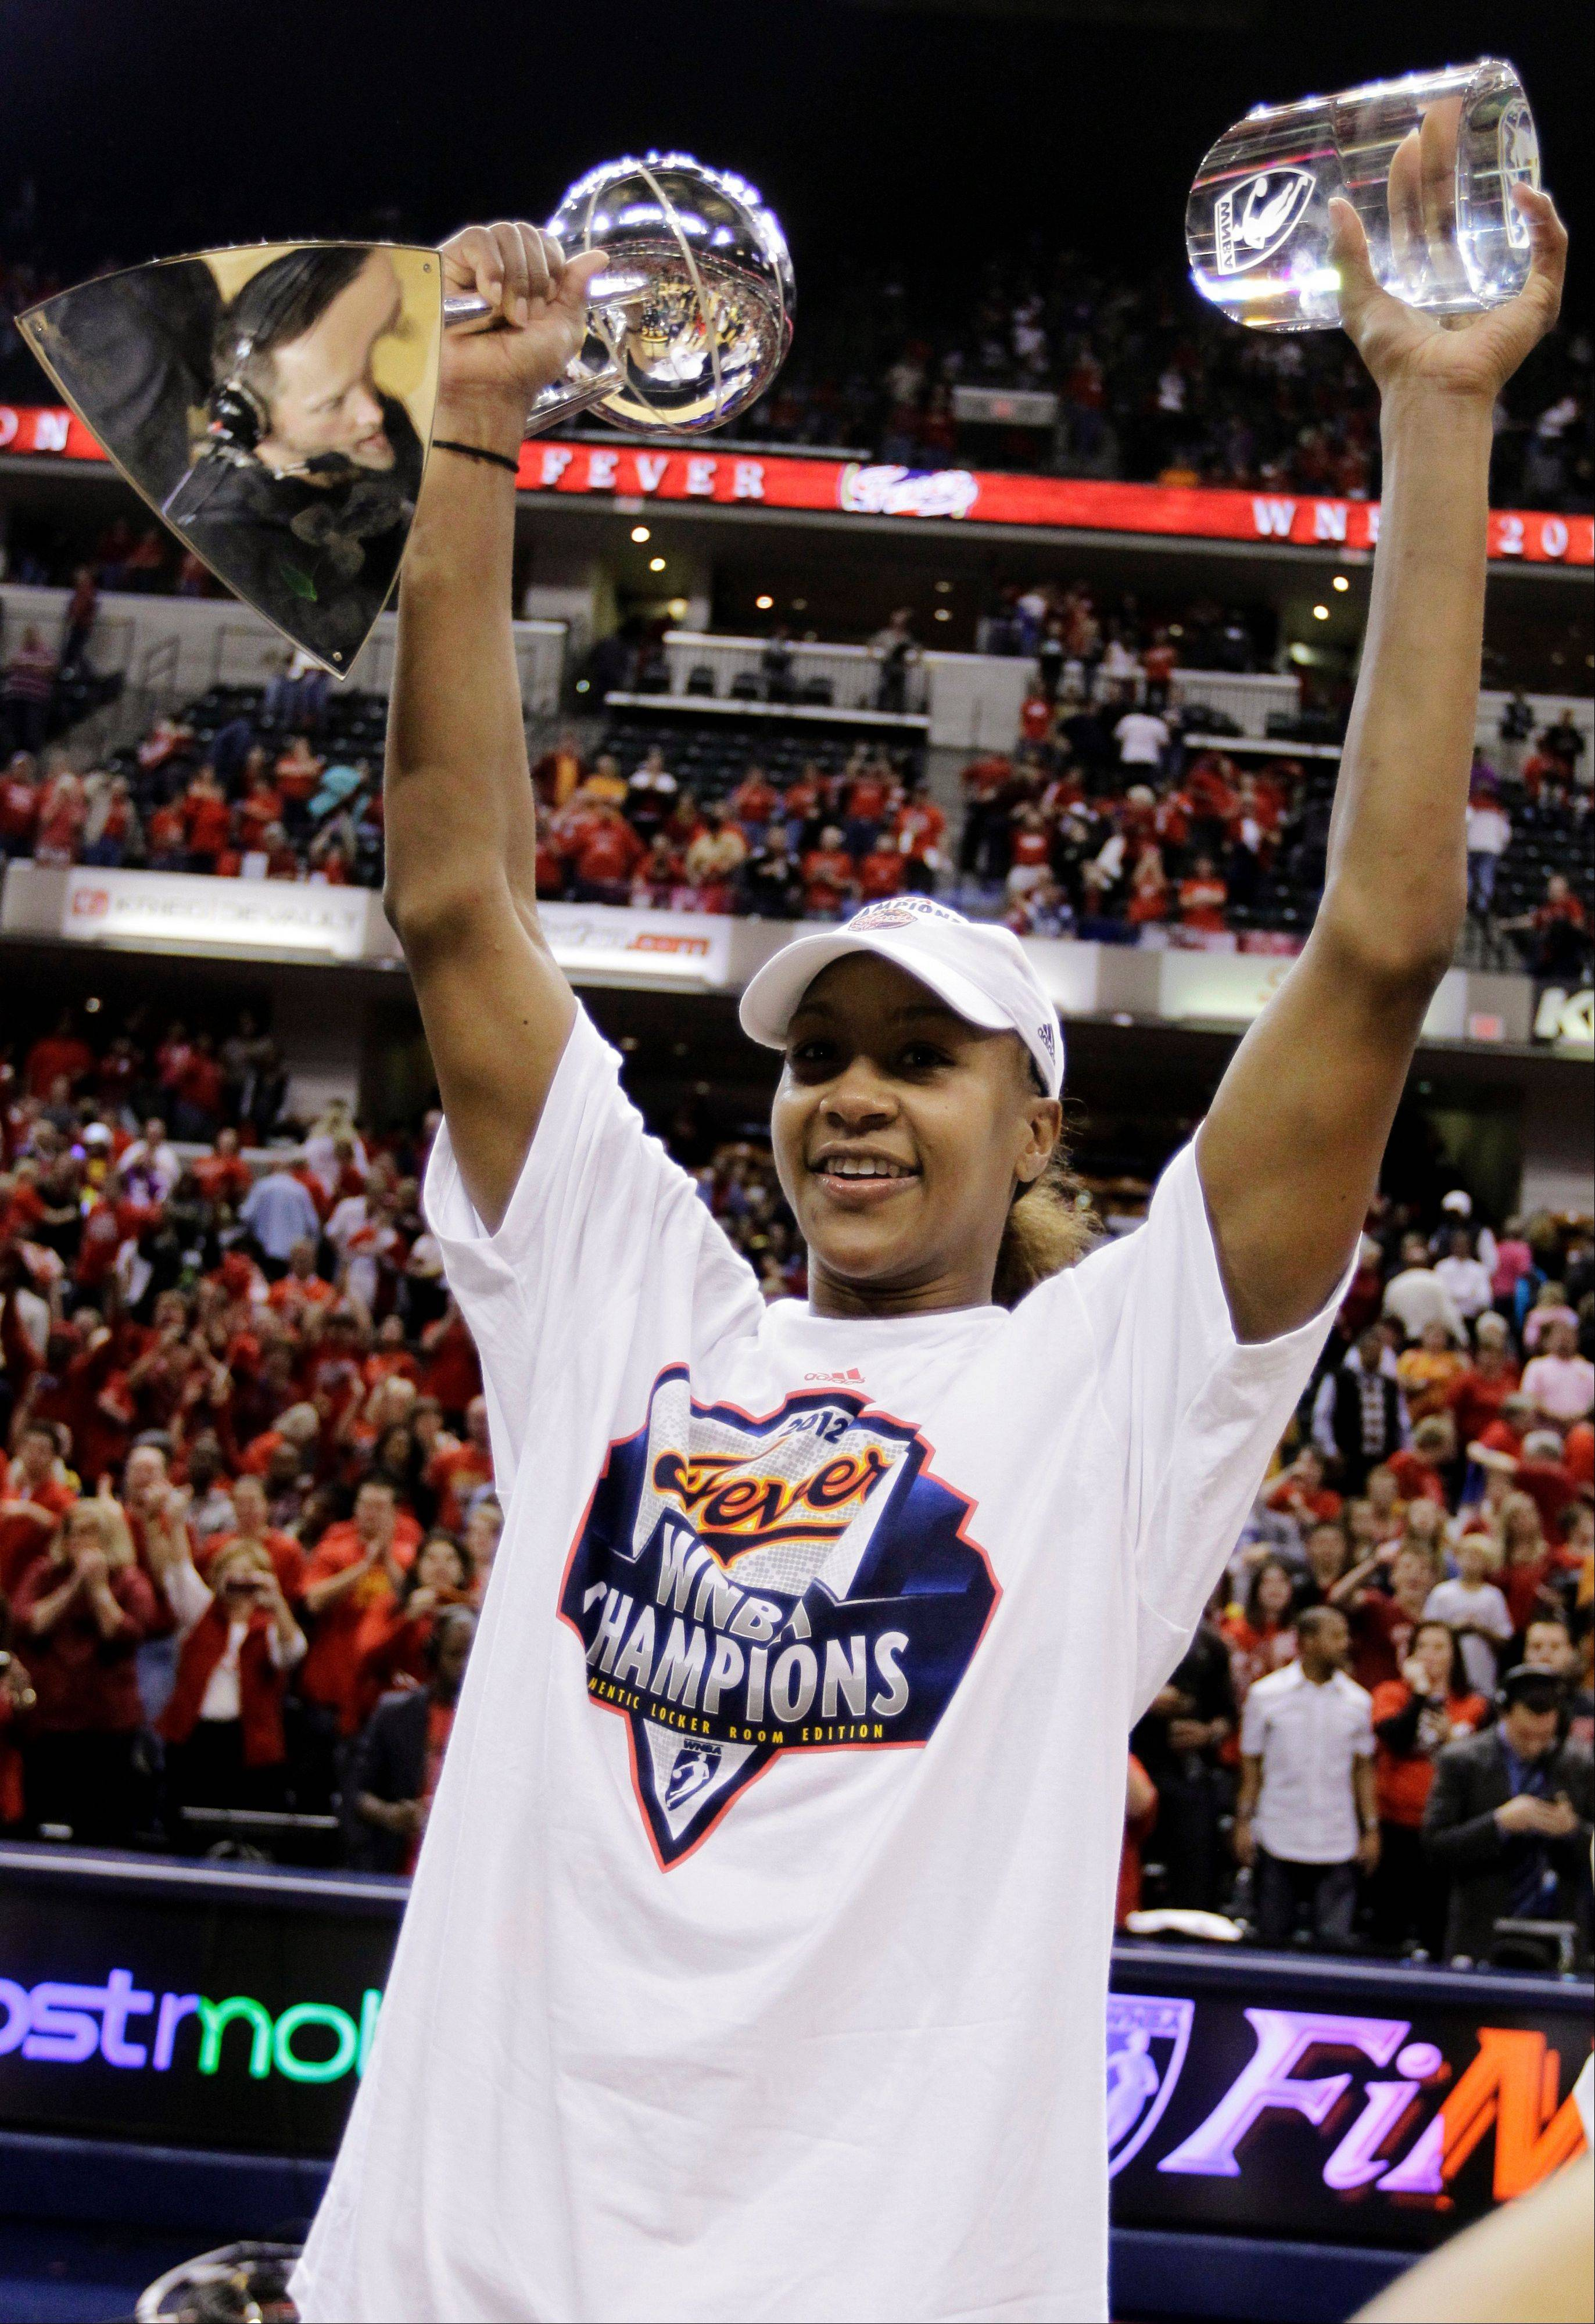 Indiana Fever star Tamika Catchings celebrates with the WNBA championship trophy and Finals MVP award.